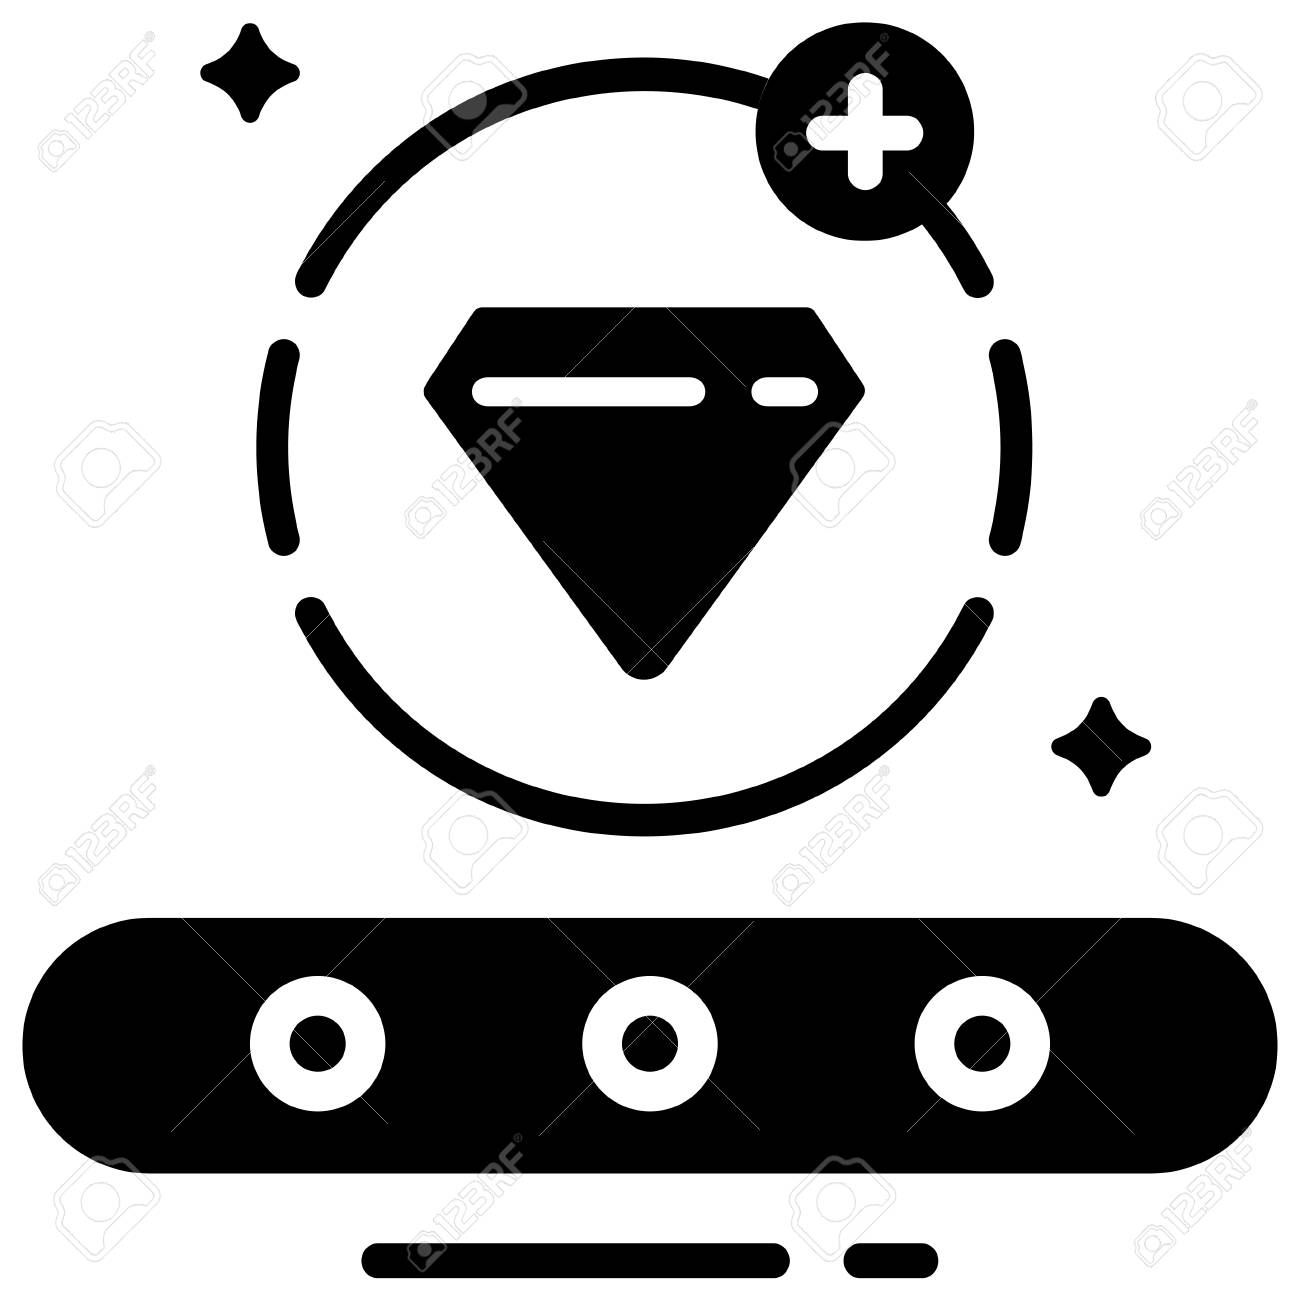 Conveyor and diamond with plus icon in circle line vector illustration